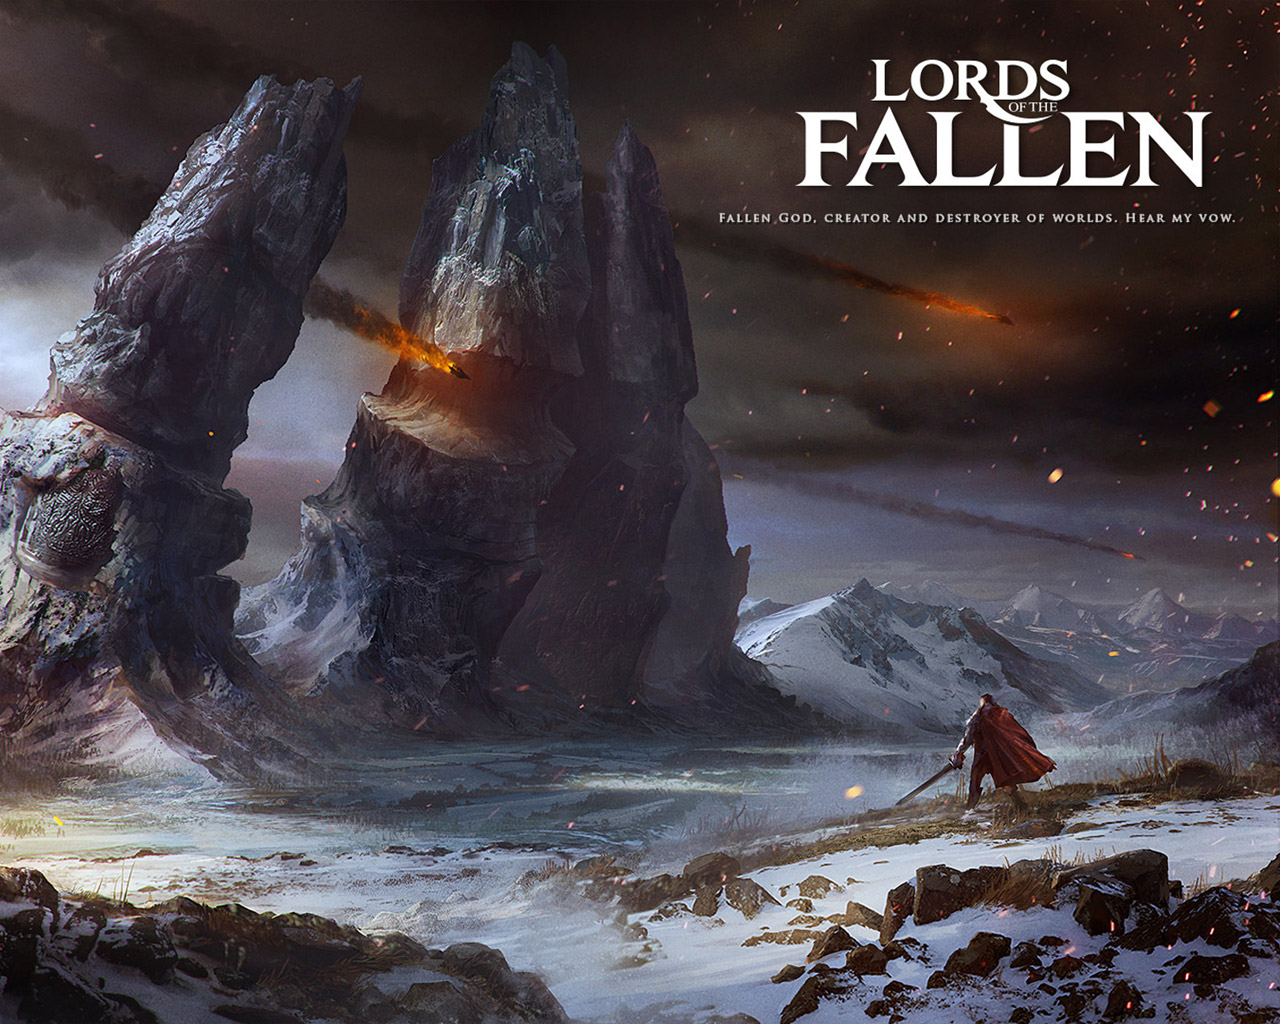 Free Lords of the Fallen Wallpaper in 1280x1024